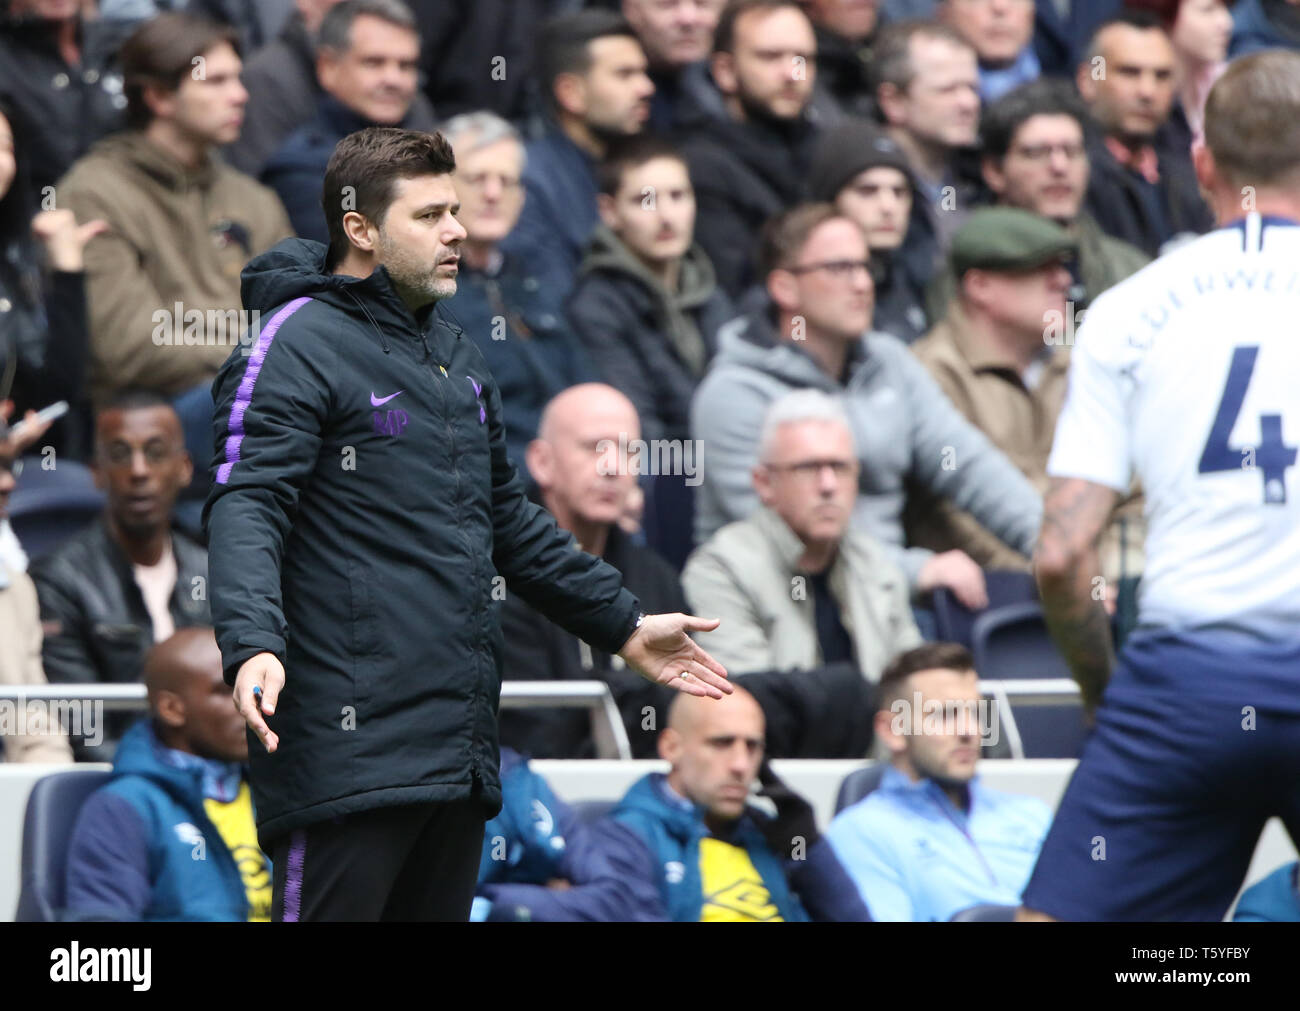 London, UK. 27th Apr 2019. Mauricio Pochettino (Spurs manager) at the Tottenham Hotspur v West Ham United English Premier League match, at The Tottenham Hotspur Stadium, London, UK on April 27, 2019. **Editorial use only, license required for commercial use. No use in betting, games or a single club/league/player publications** Credit: Paul Marriott/Alamy Live News - Stock Image